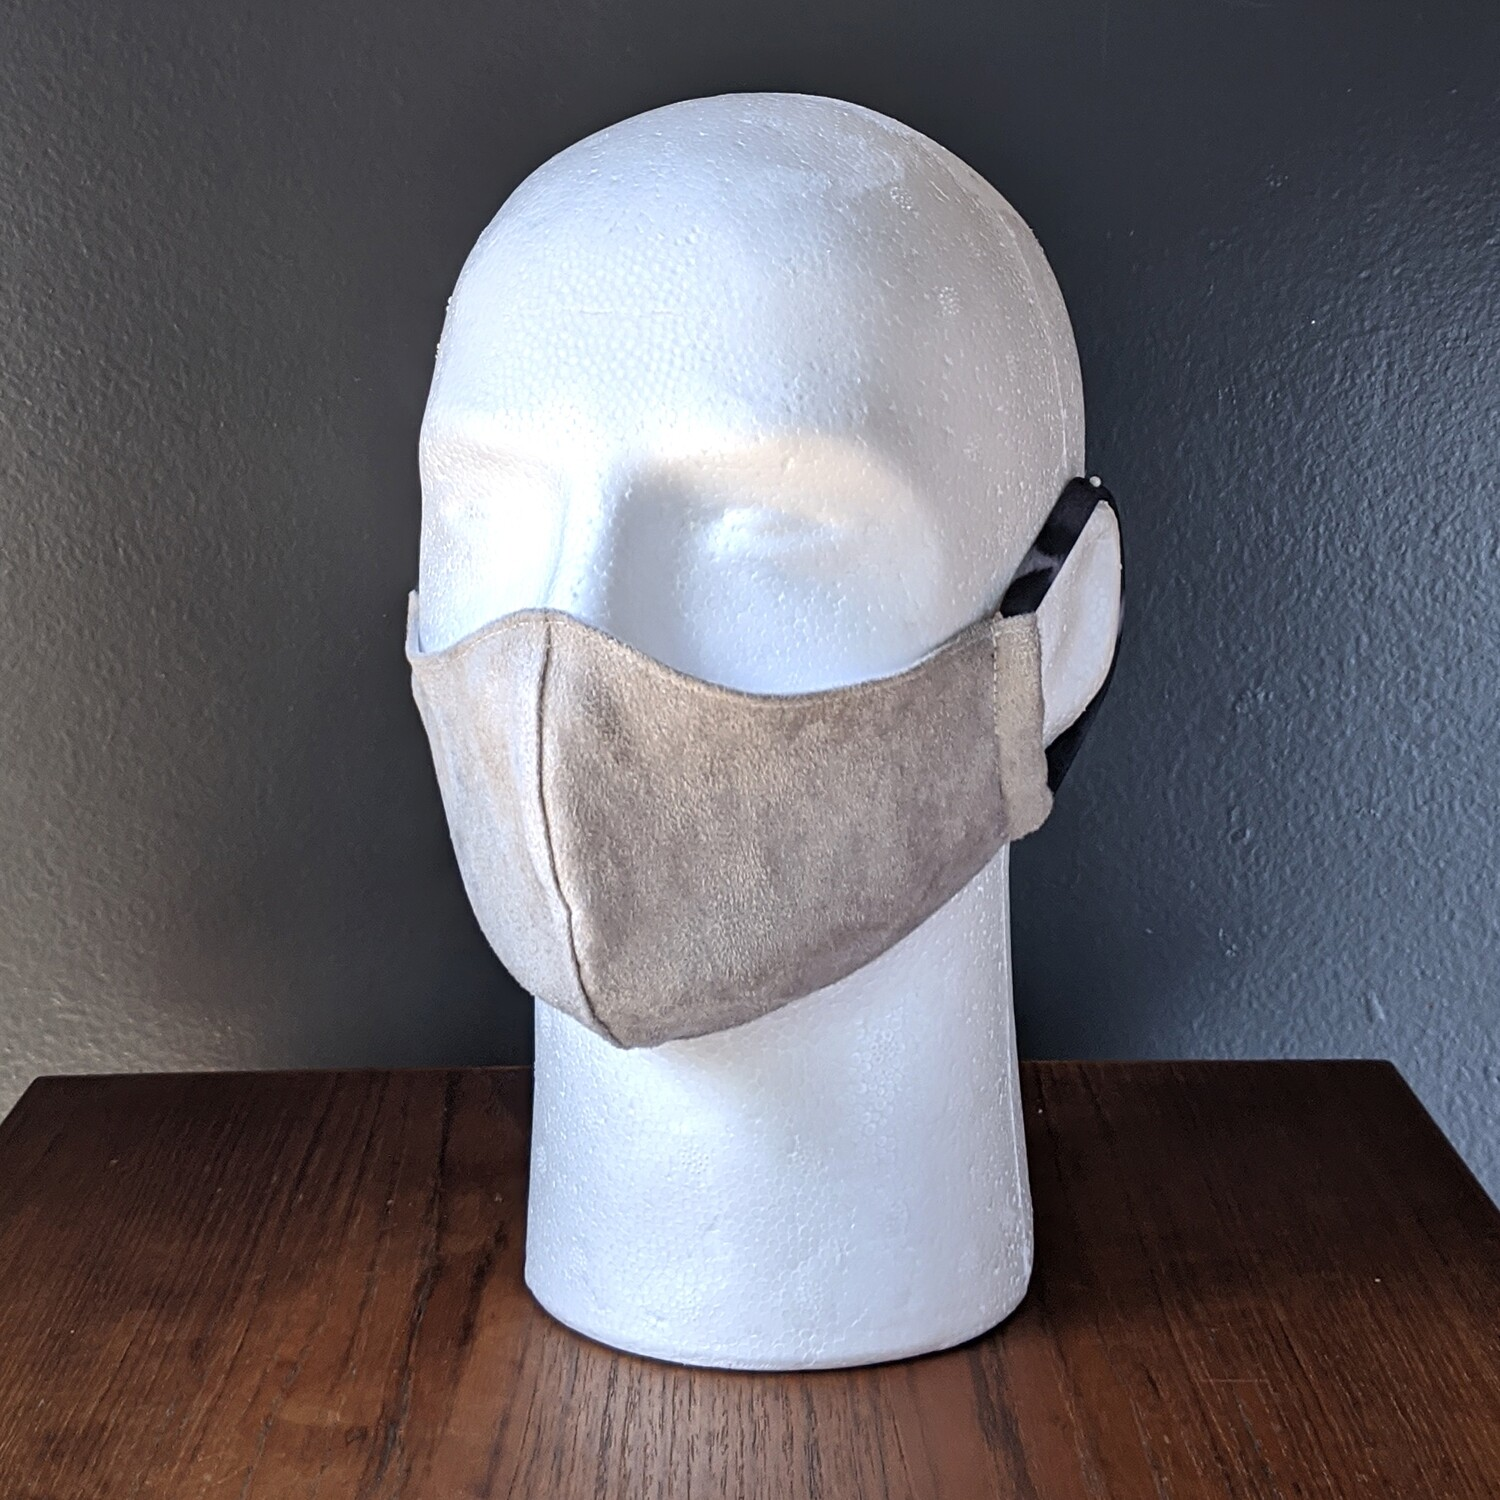 Gray Suede Costume Face Mask, Pride, Mardi Gras, Halloween. Small, Unisex, Reusable, Double Layer for Smog, Pollen, Dust, Smoke. Made in USA